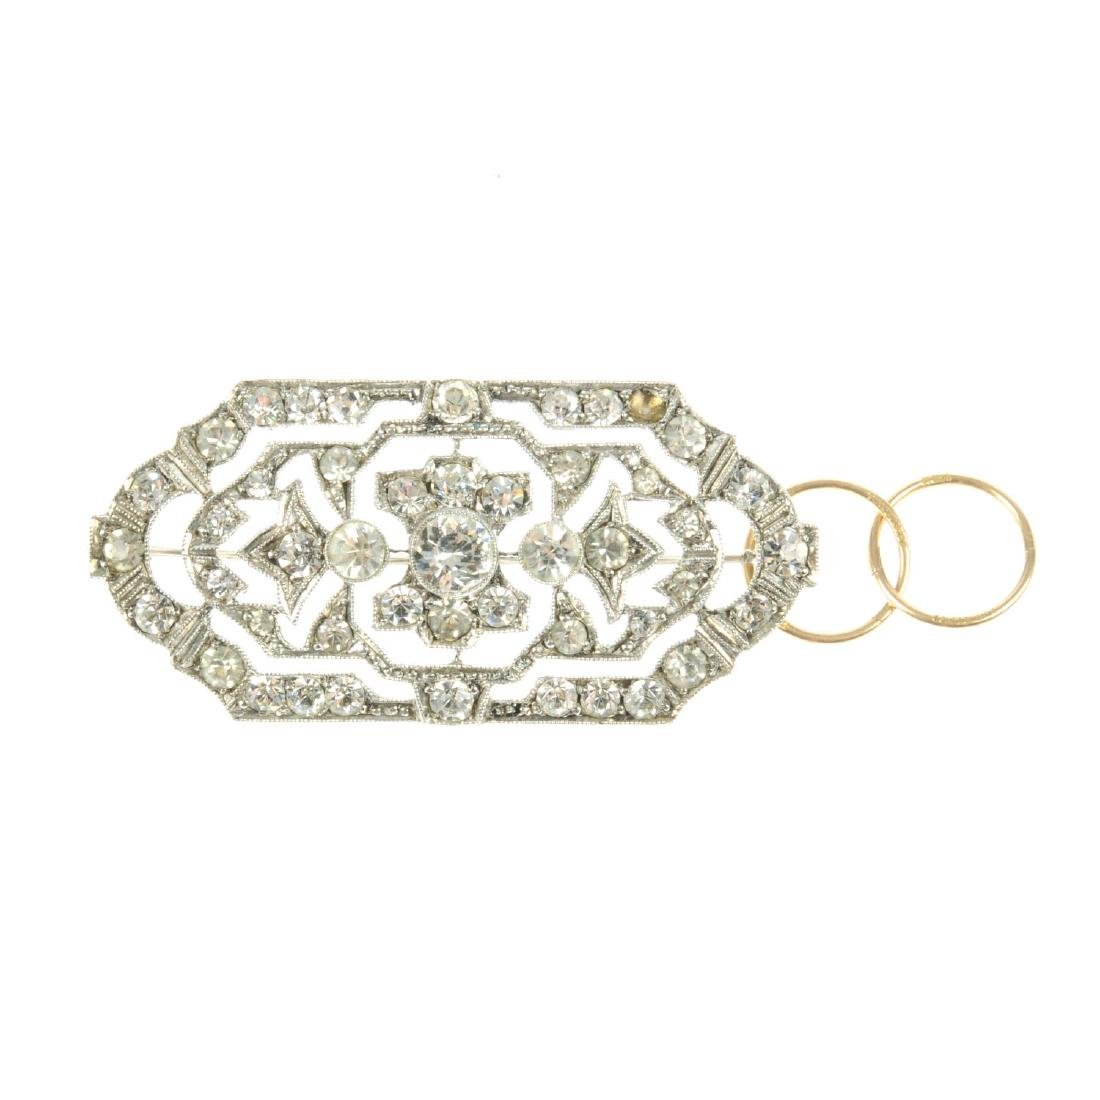 An early 20th century silver paste brooch and a pair of